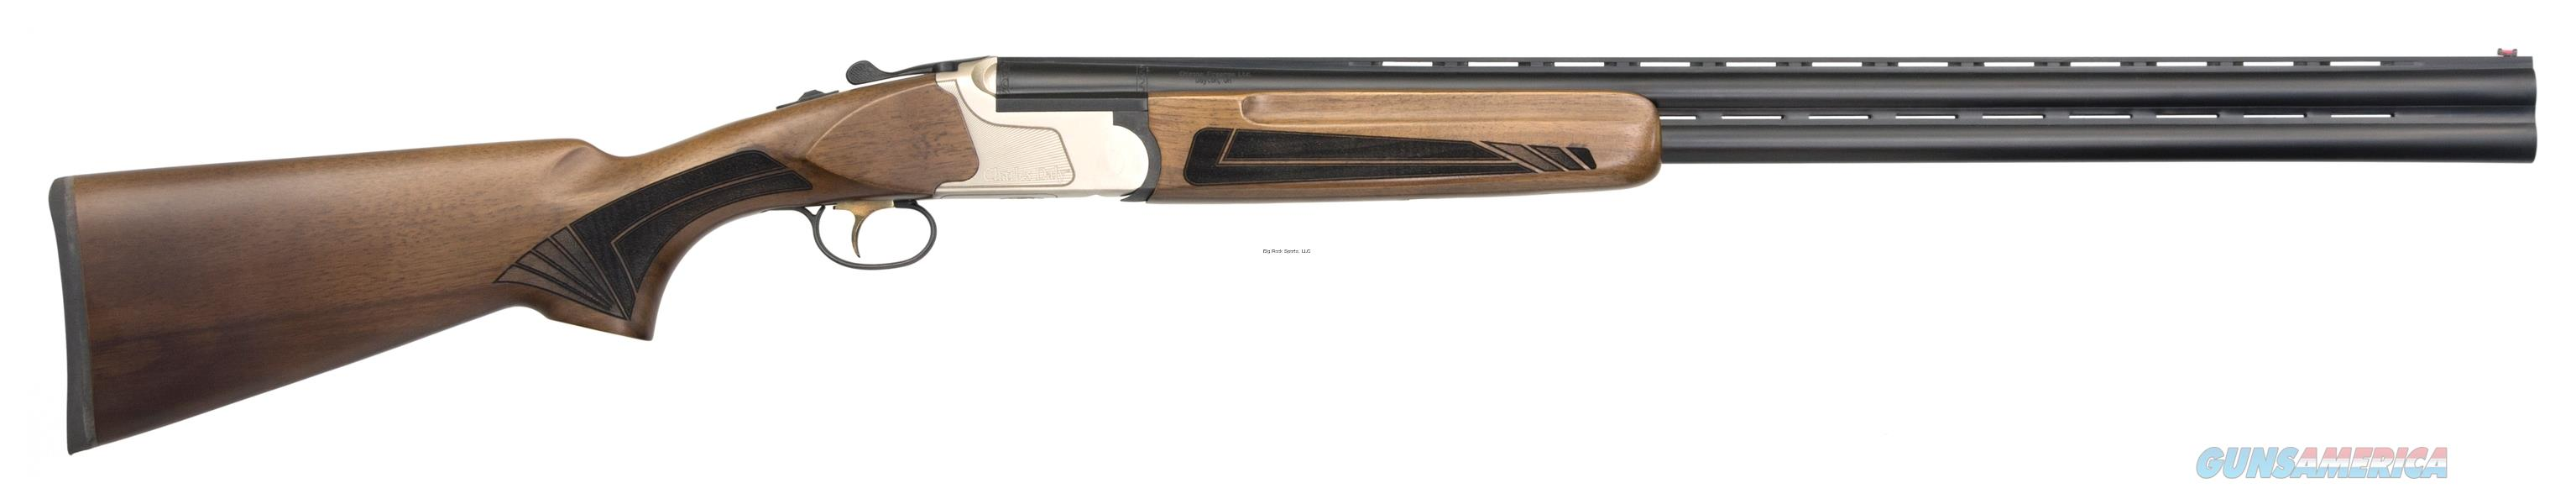 "Chiappa Firearms 202 O/U Shotgun,20 Ga 3"", White, 26"" Bbl, Ejector, Mobil Choke Thread Pattern, Walnut Stock, Single Selective Trigger 930.131  Guns > Shotguns > C Misc Shotguns"